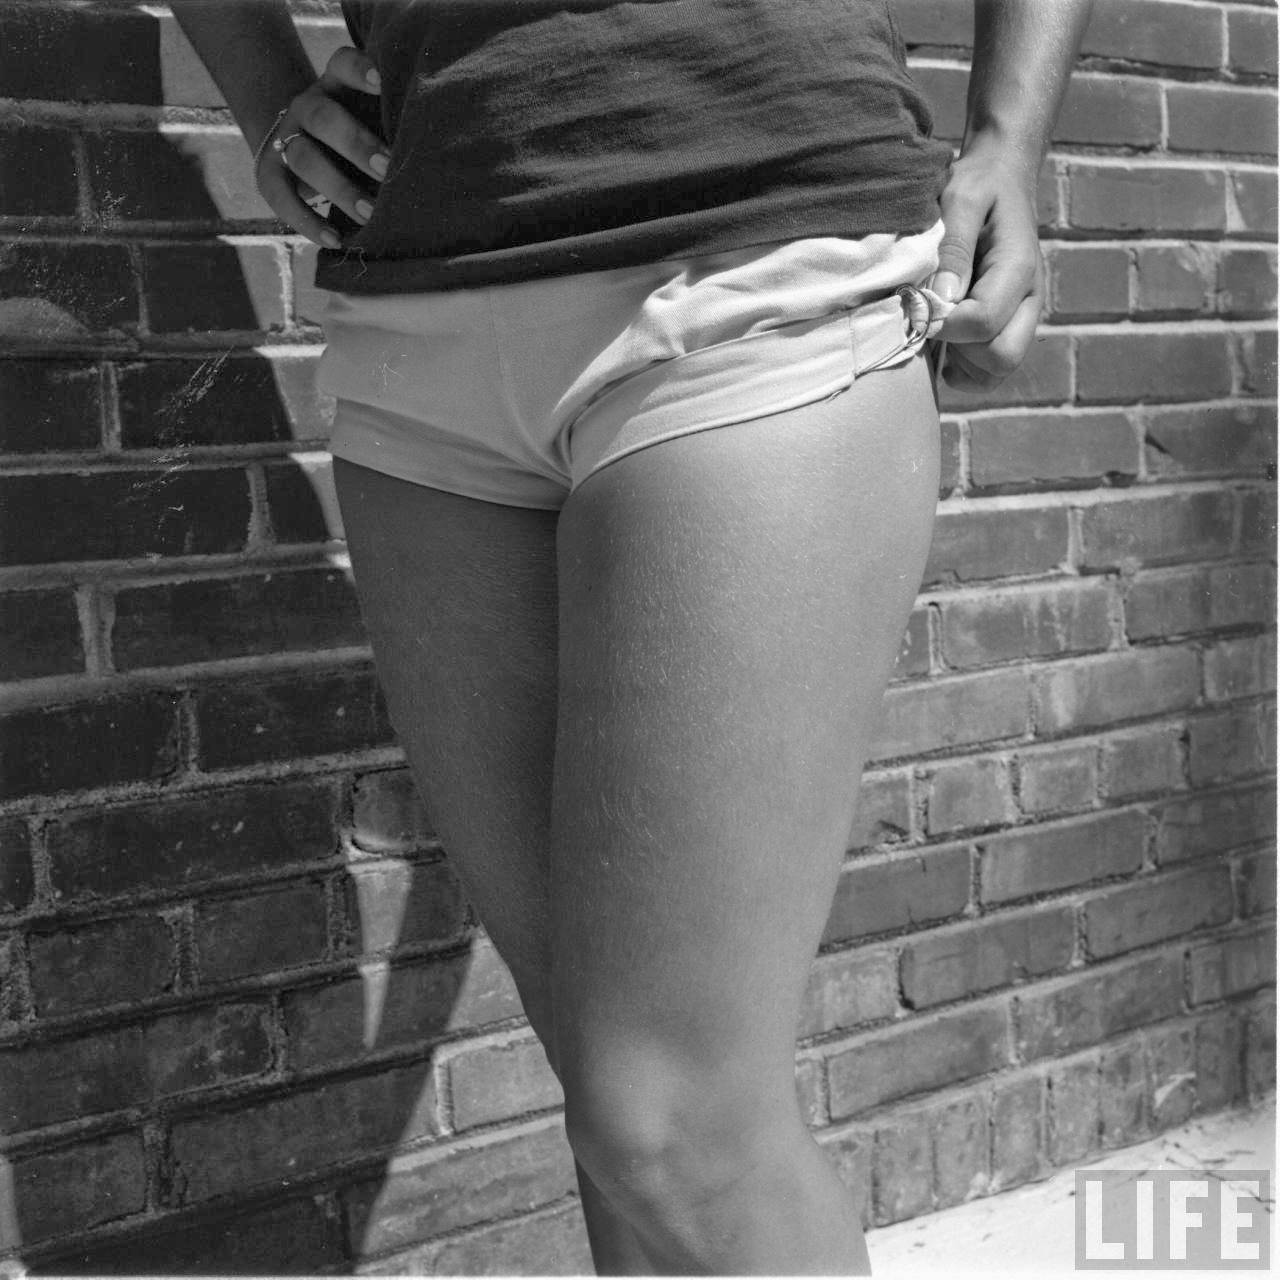 Short Shorts in the 1950s  vintage everyday